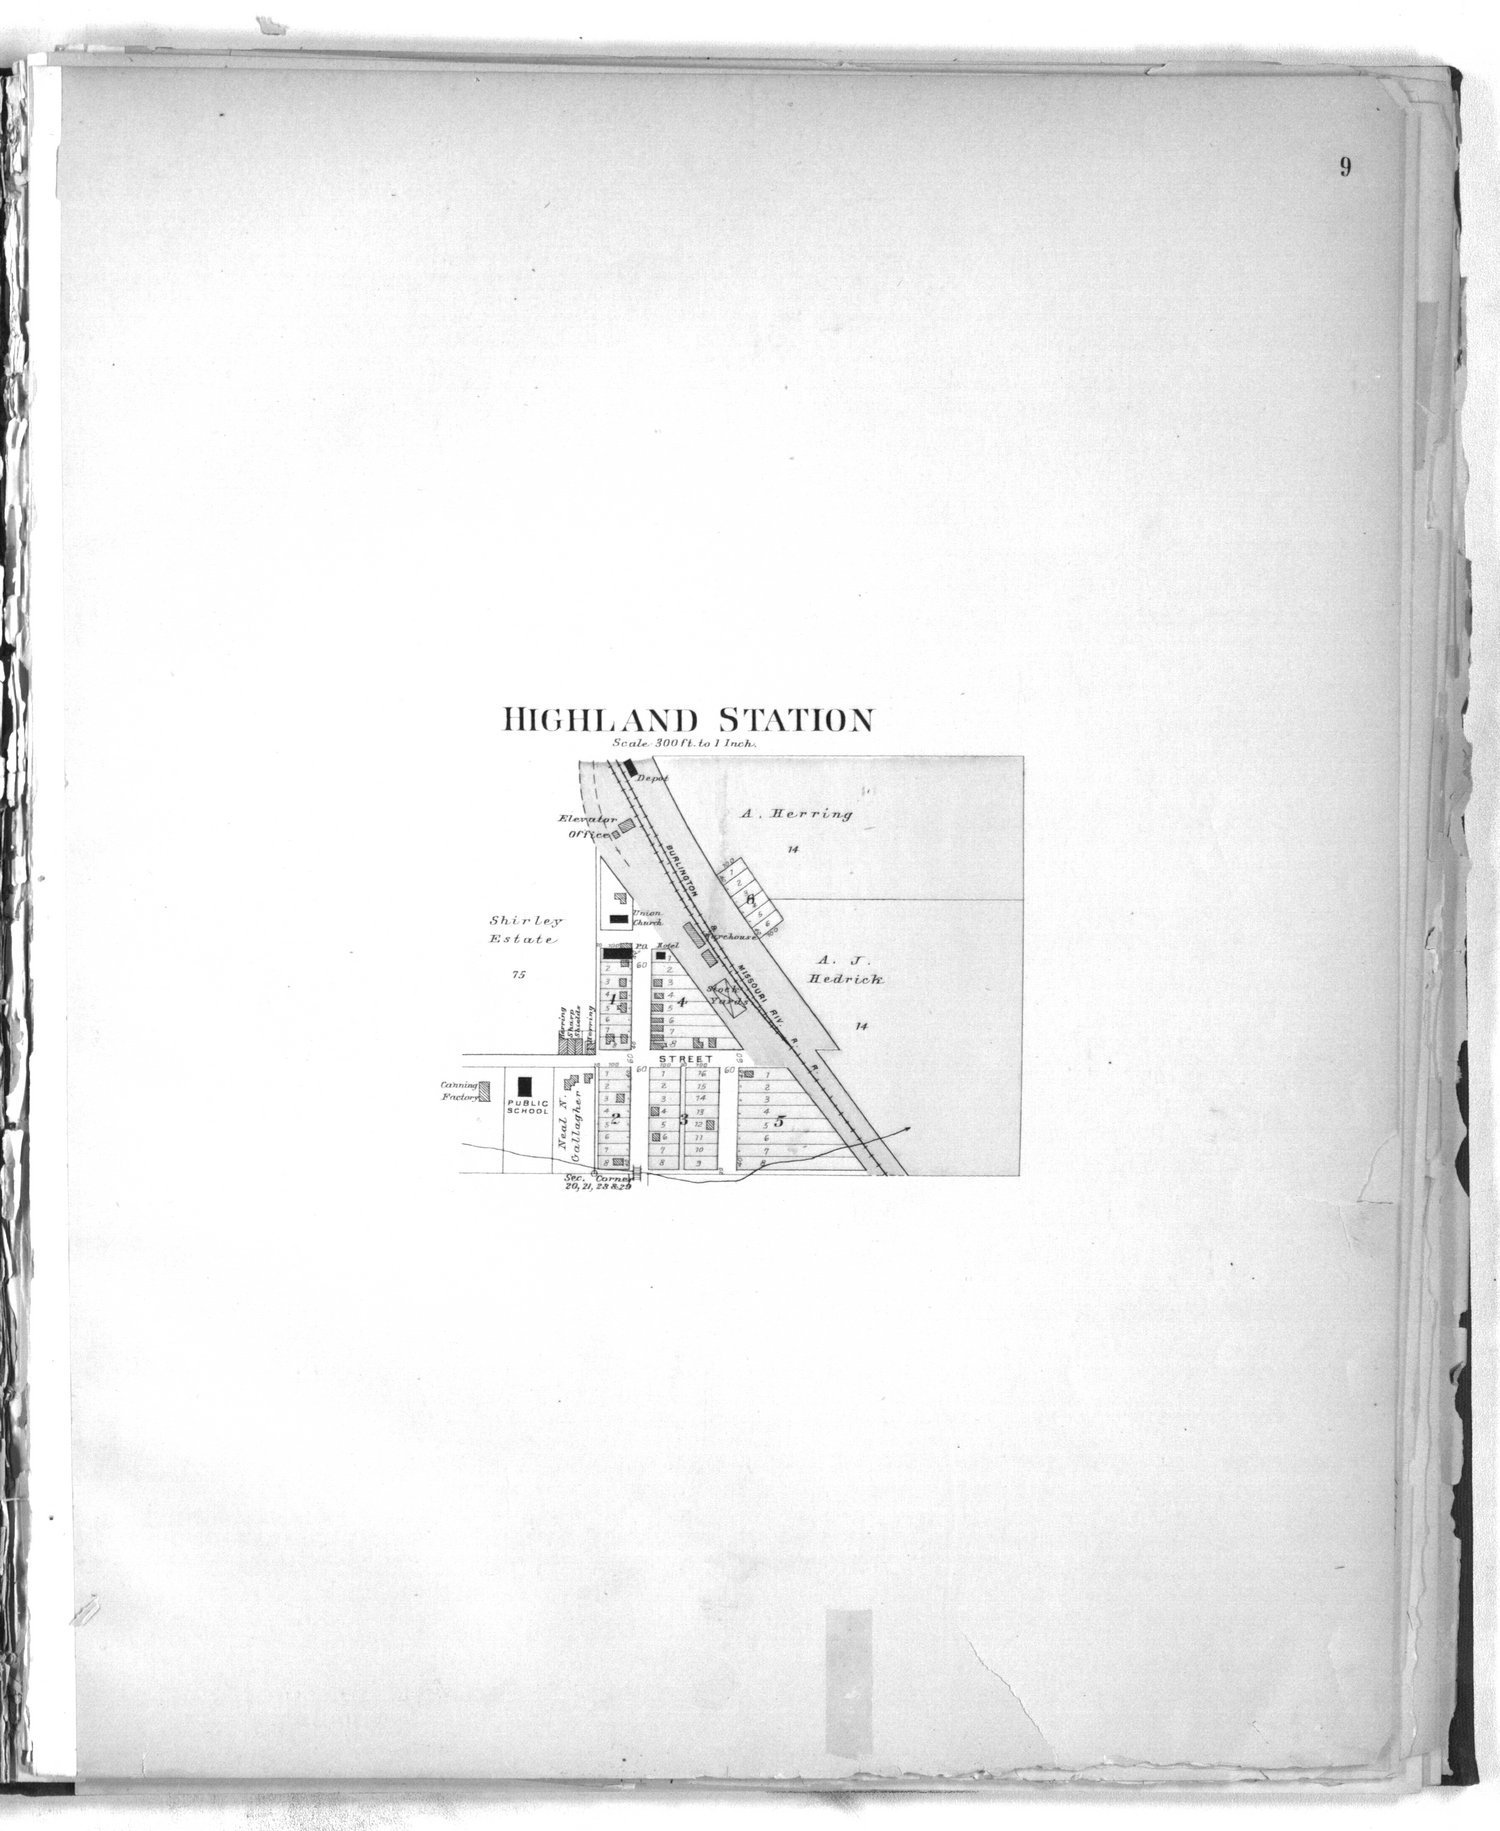 Plat book of Doniphan County, Kansas - 9